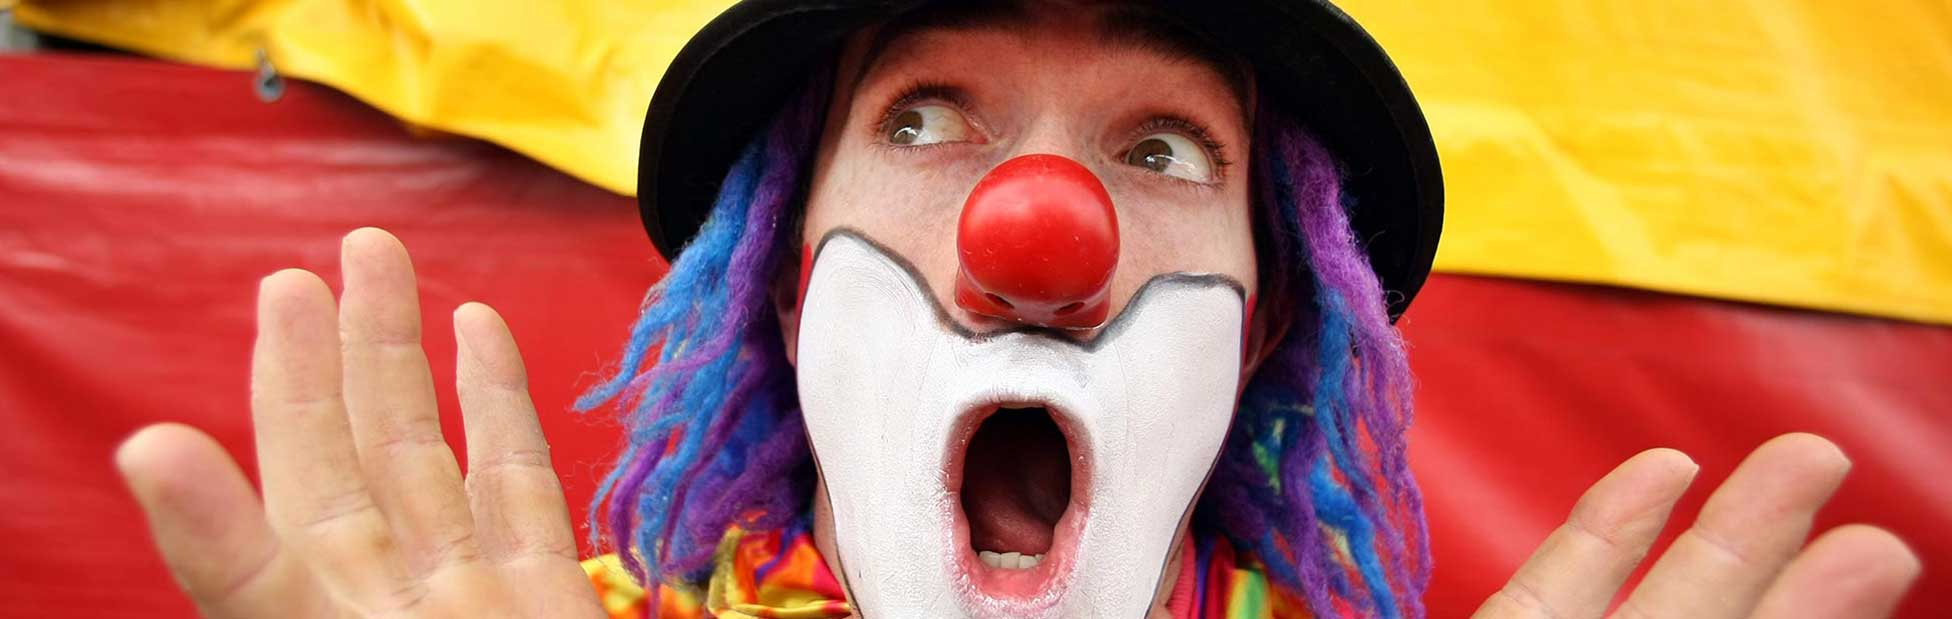 Clown pulling a silly face